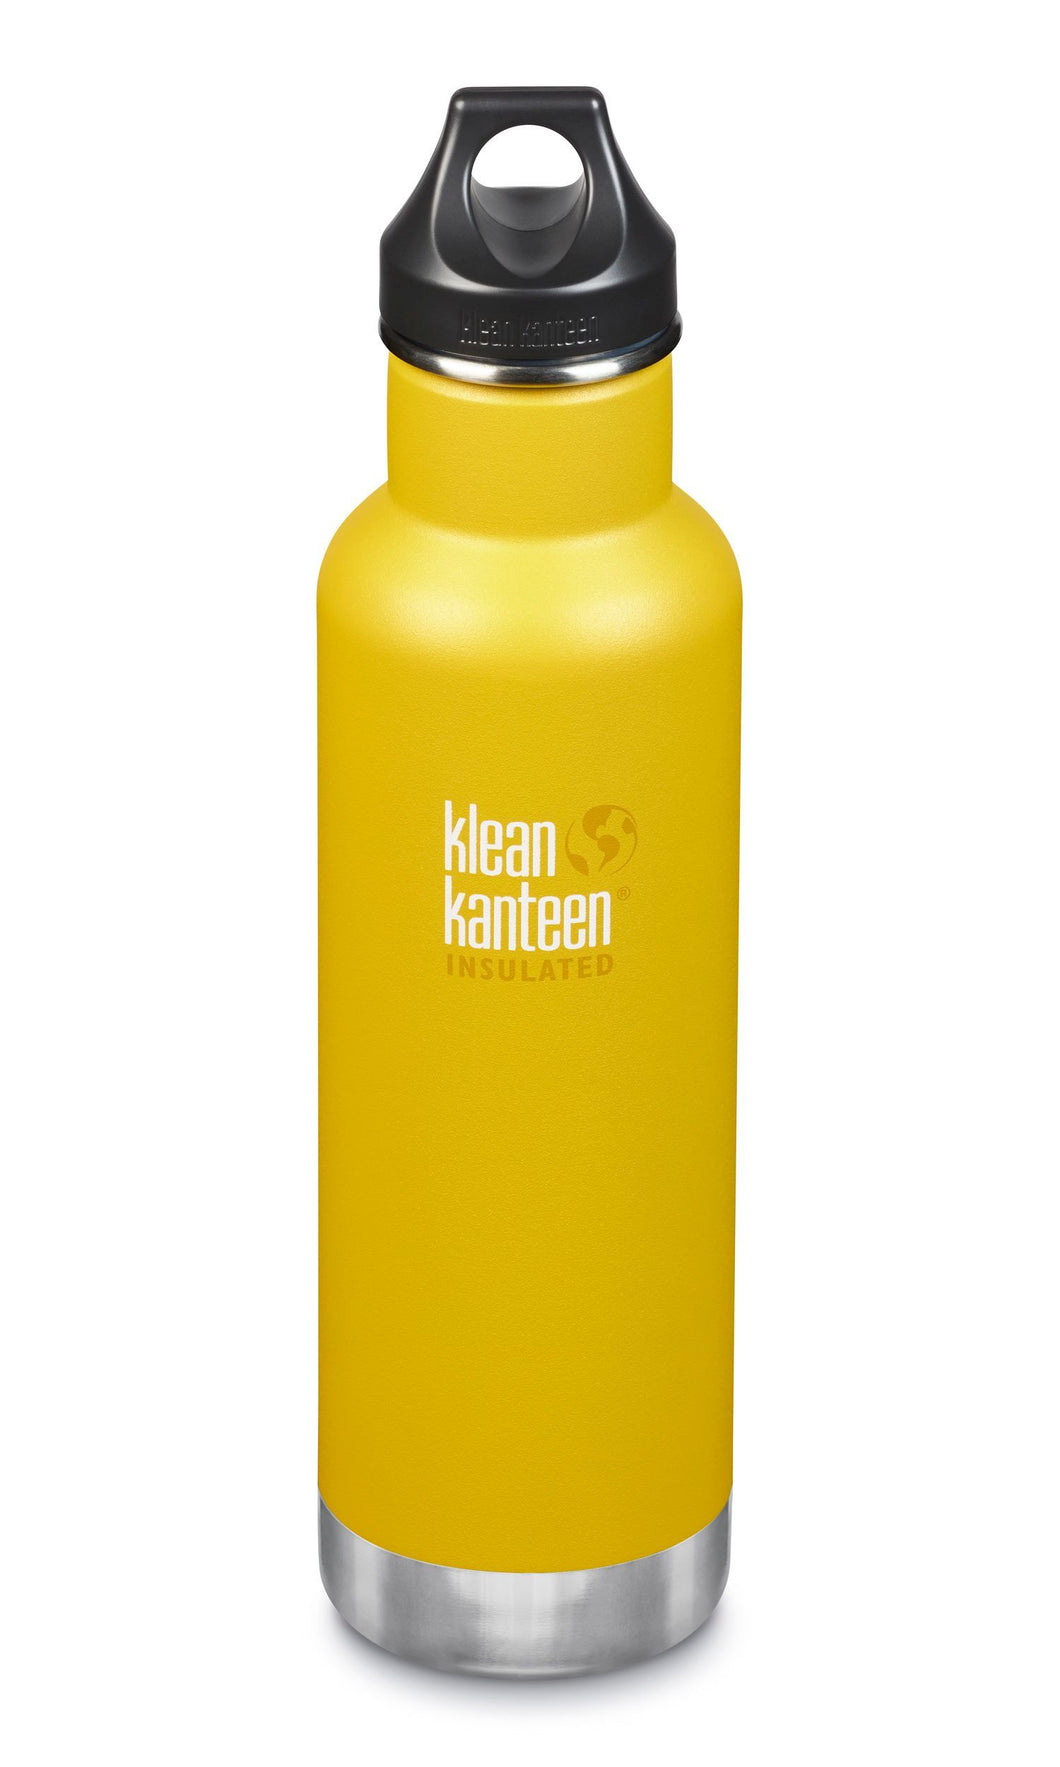 Klean Kanteen - Insulated Classic 20 oz. with Loop Cap